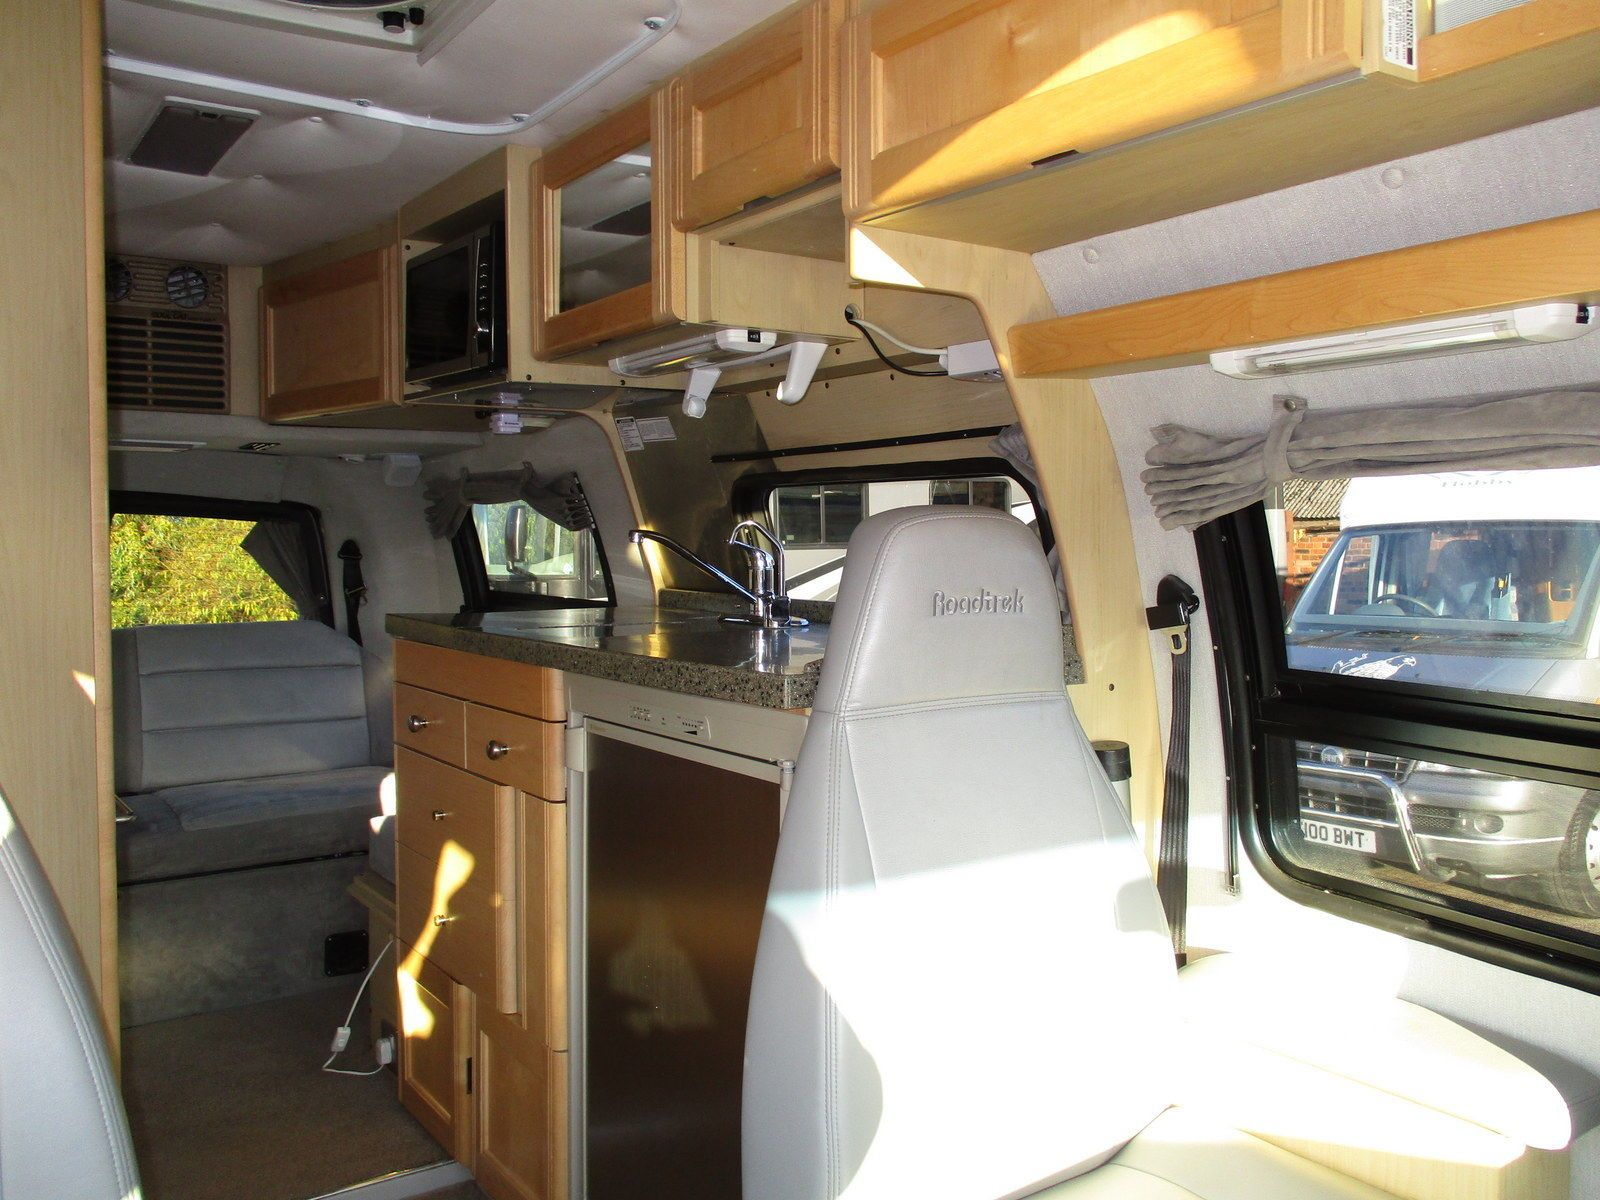 2 Berth Luxury Van Style Motorhome Quality Well Insulated RV Built By Home